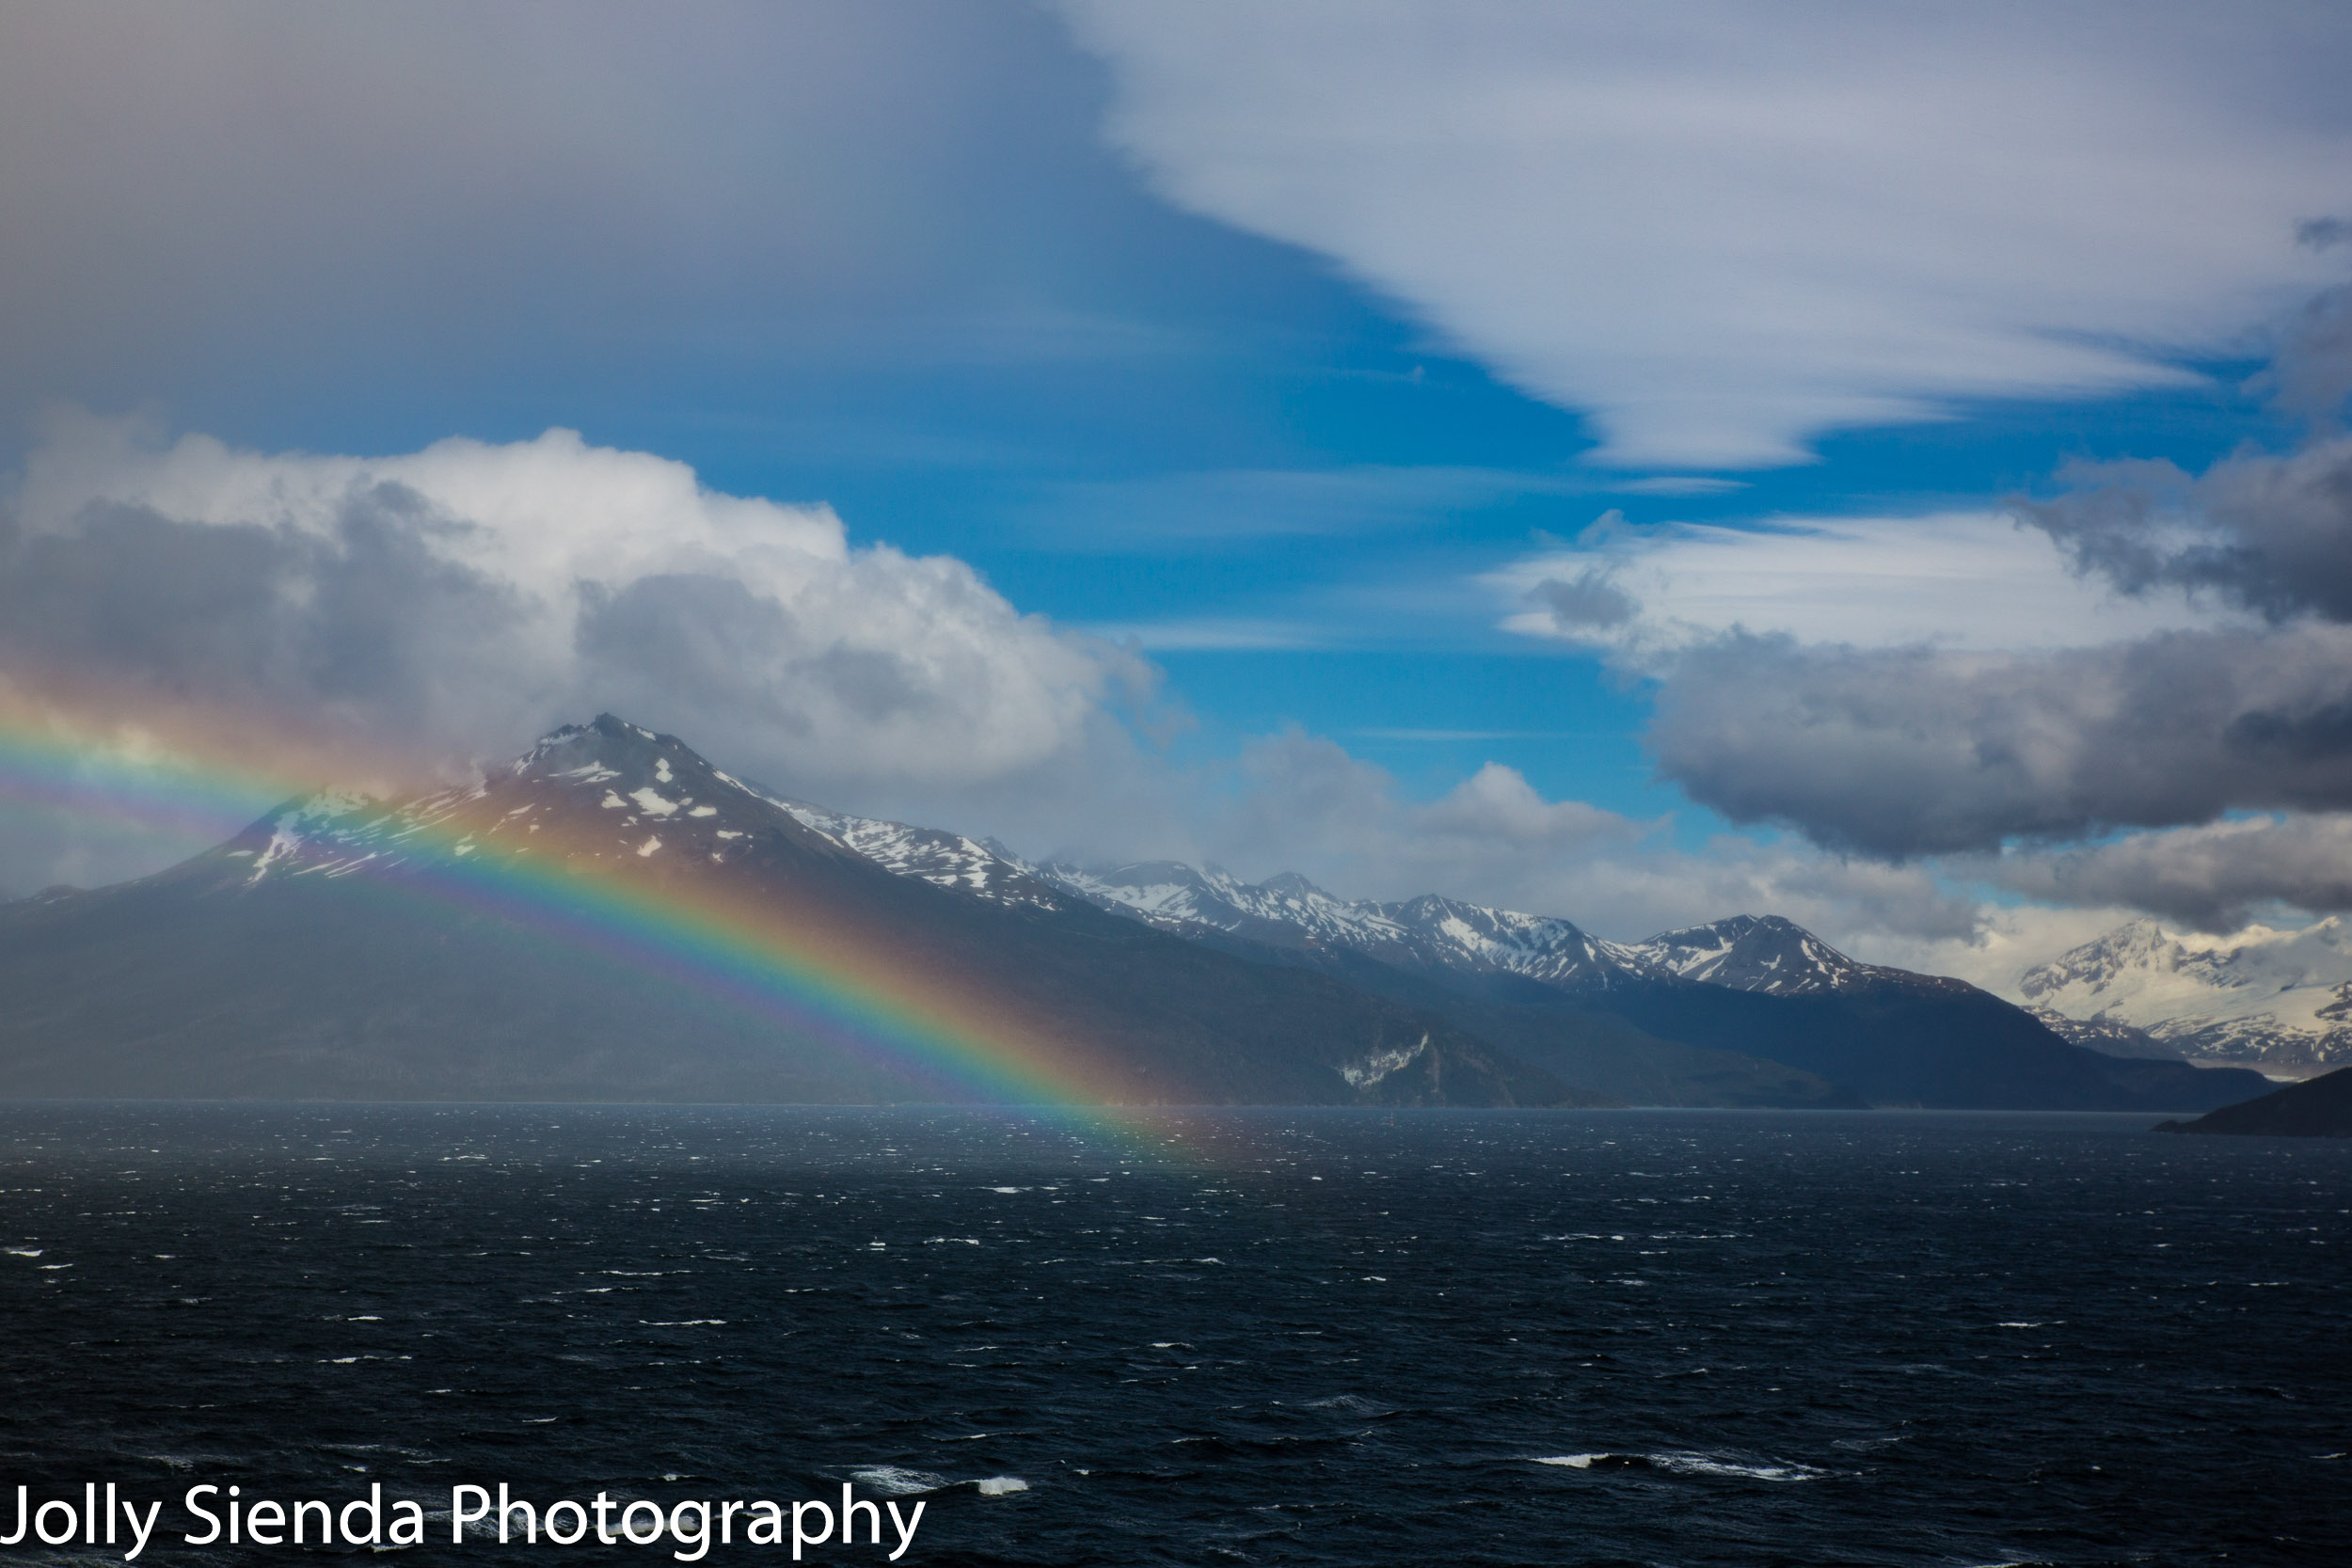 Tierra del Fuego rainbow off of the Strait of Magellen near Usushia, Argentina